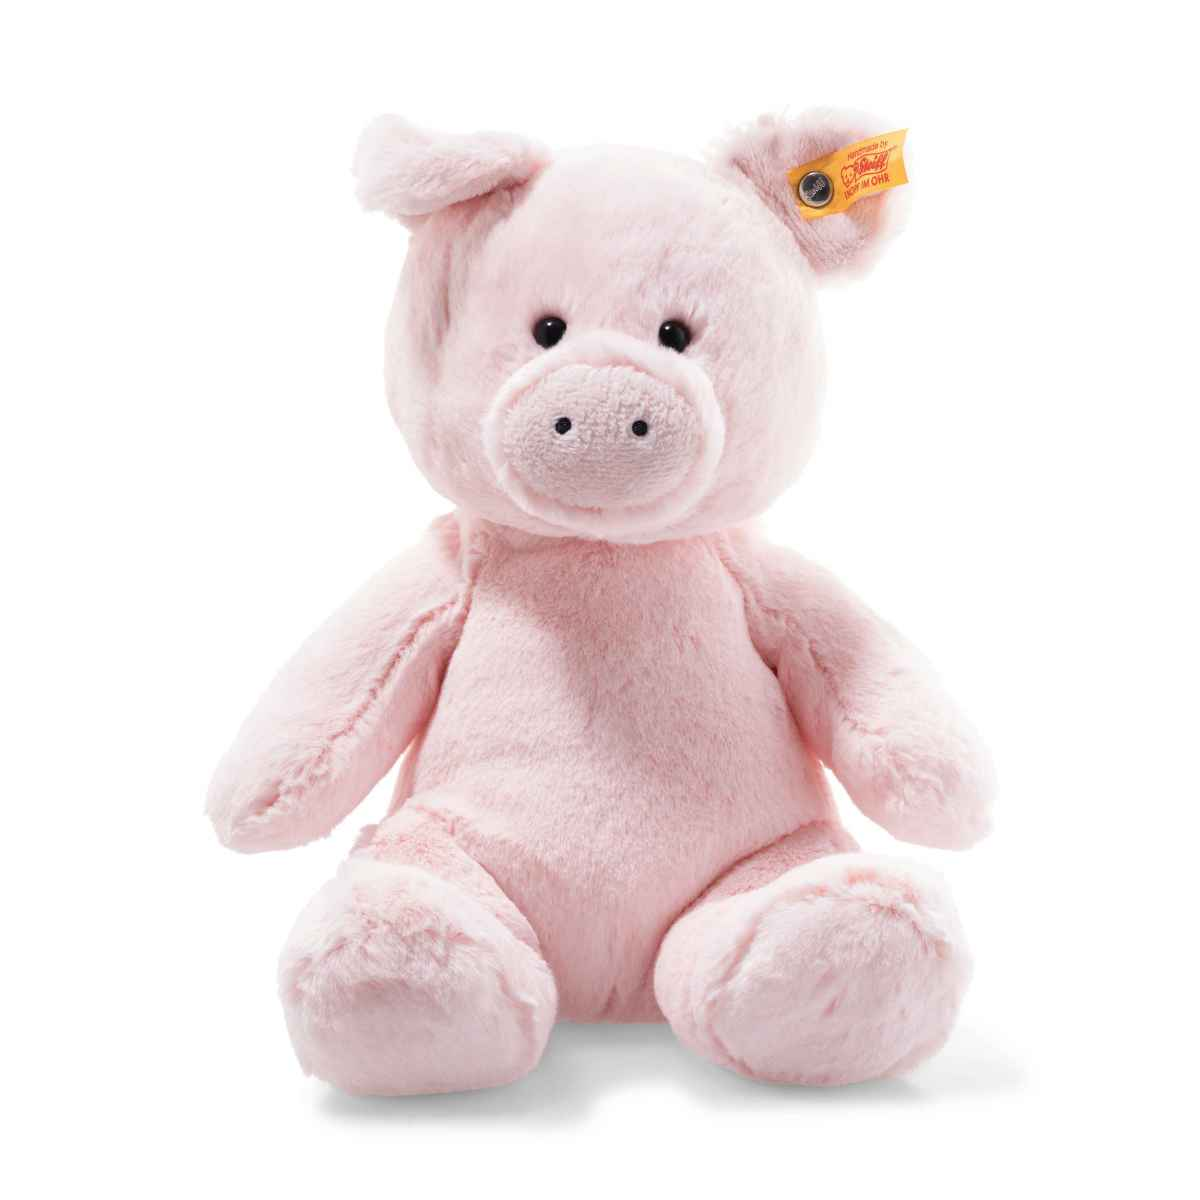 Steiff Soft Cuddly Friends Oggie Pig Medium, 28cm - EAN 057168